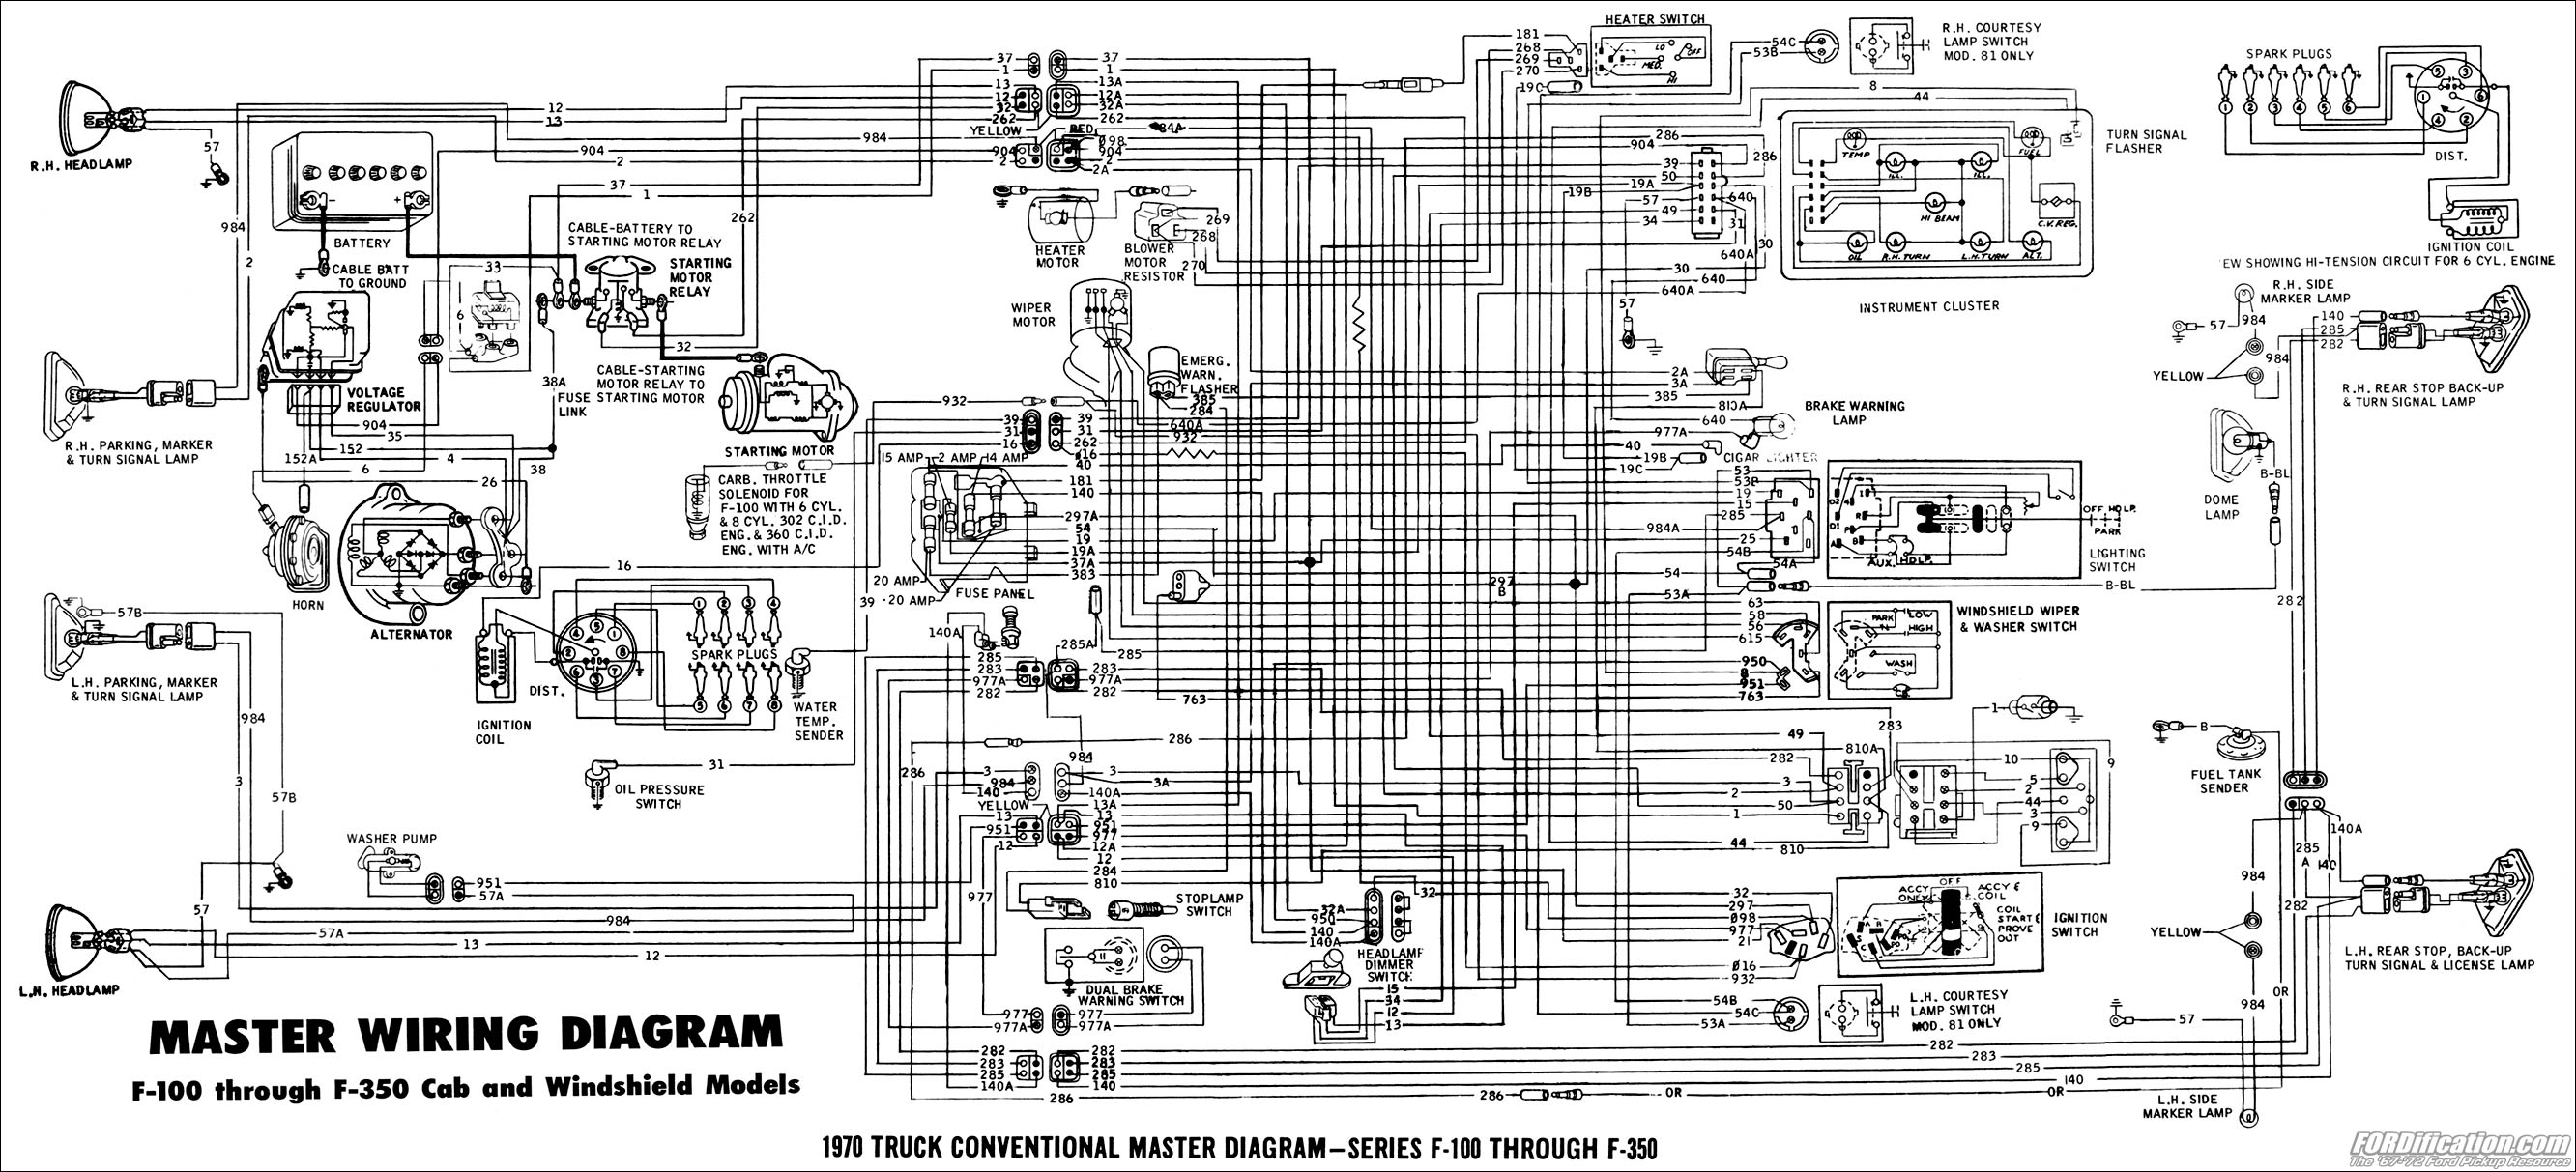 2005 ford f 150 wiring schematic fuel sending unit